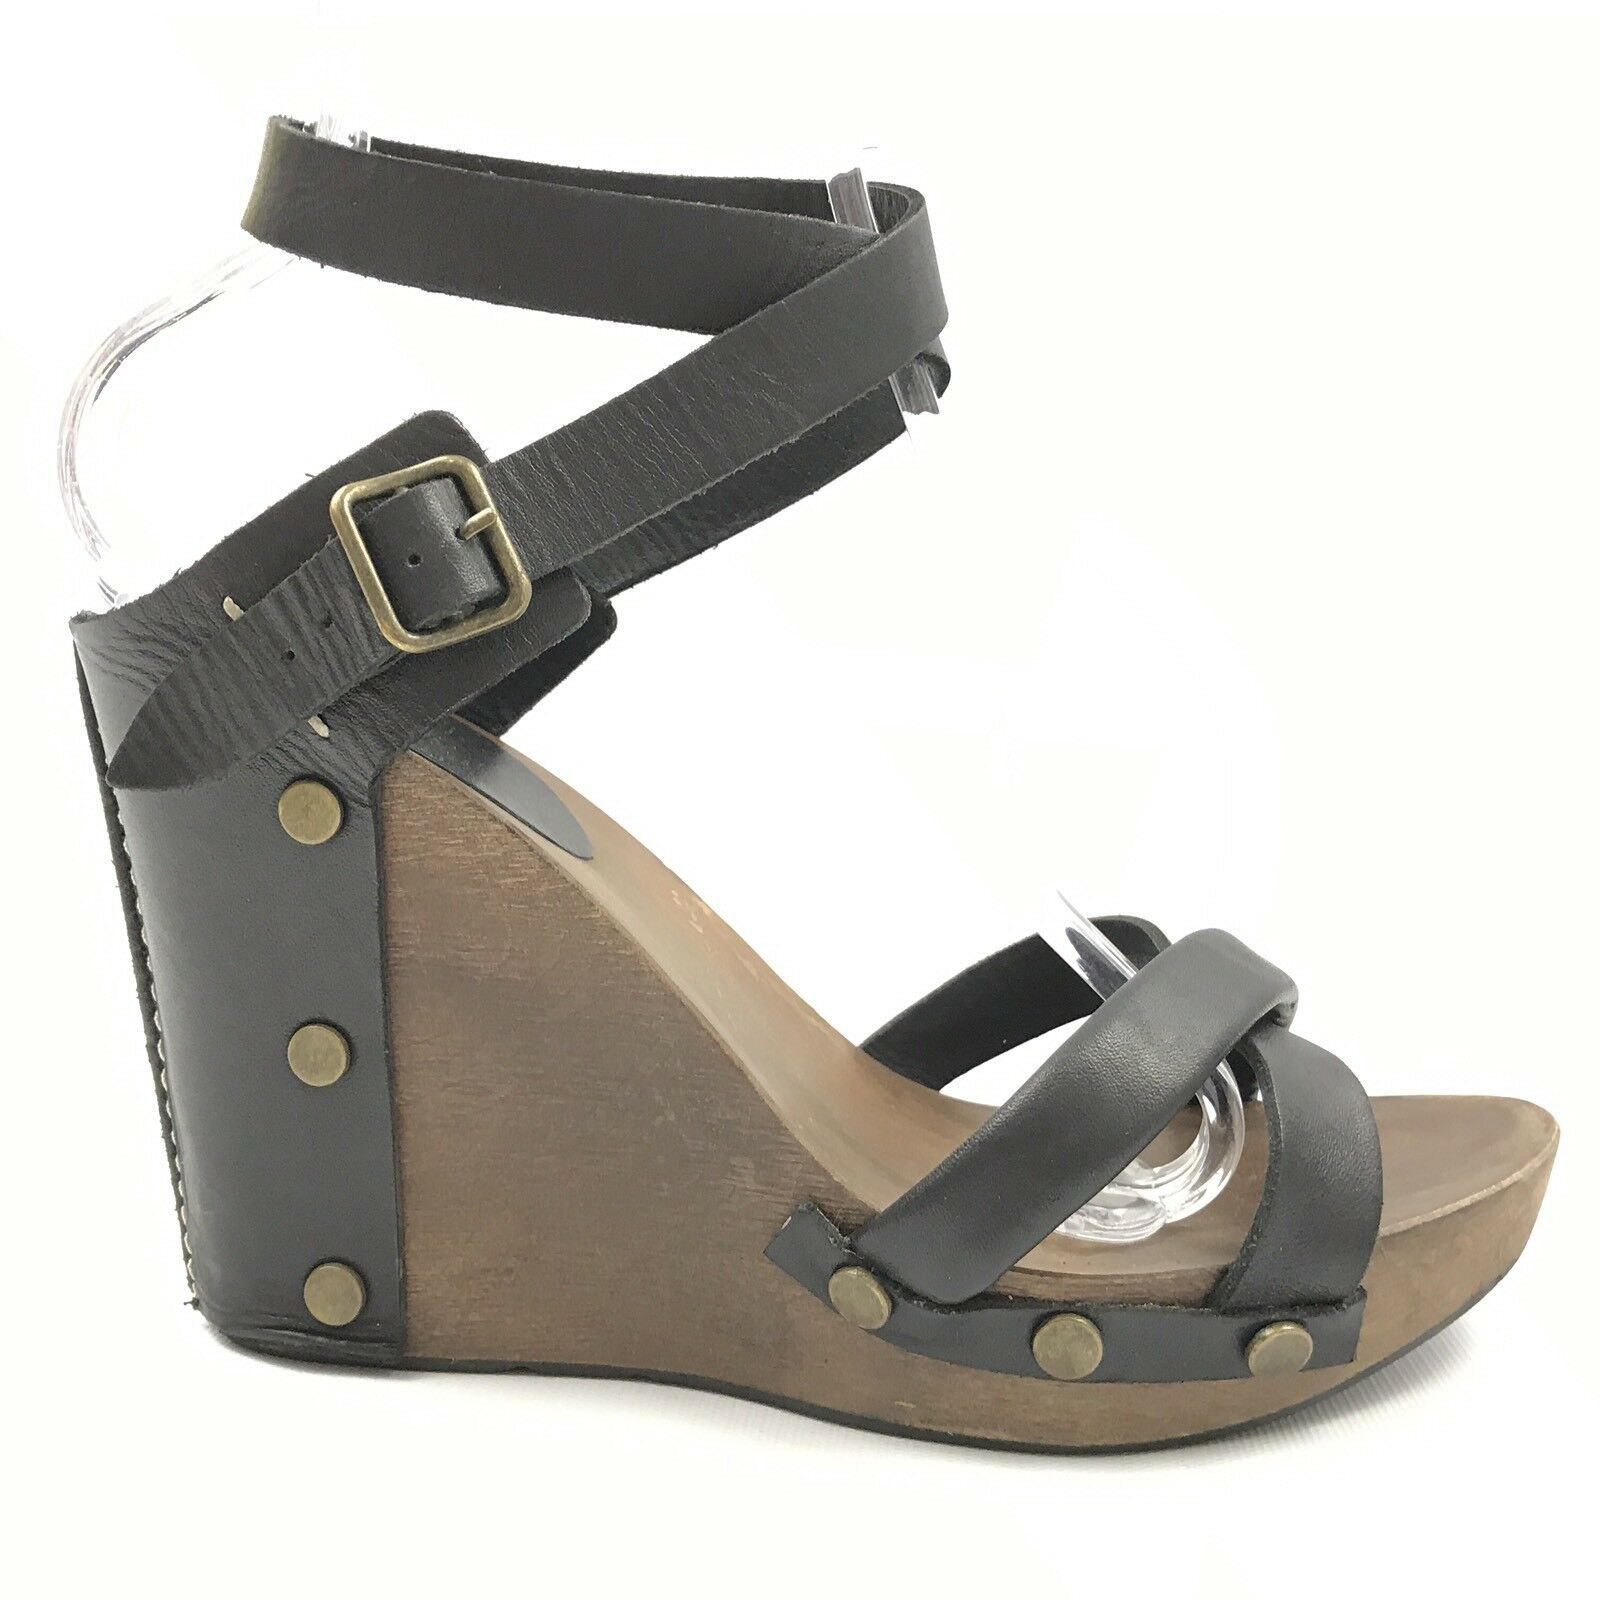 See By Chloe Sandals 40 10 Wedges Black Leather Open Toe Strap Ankle Buckle High